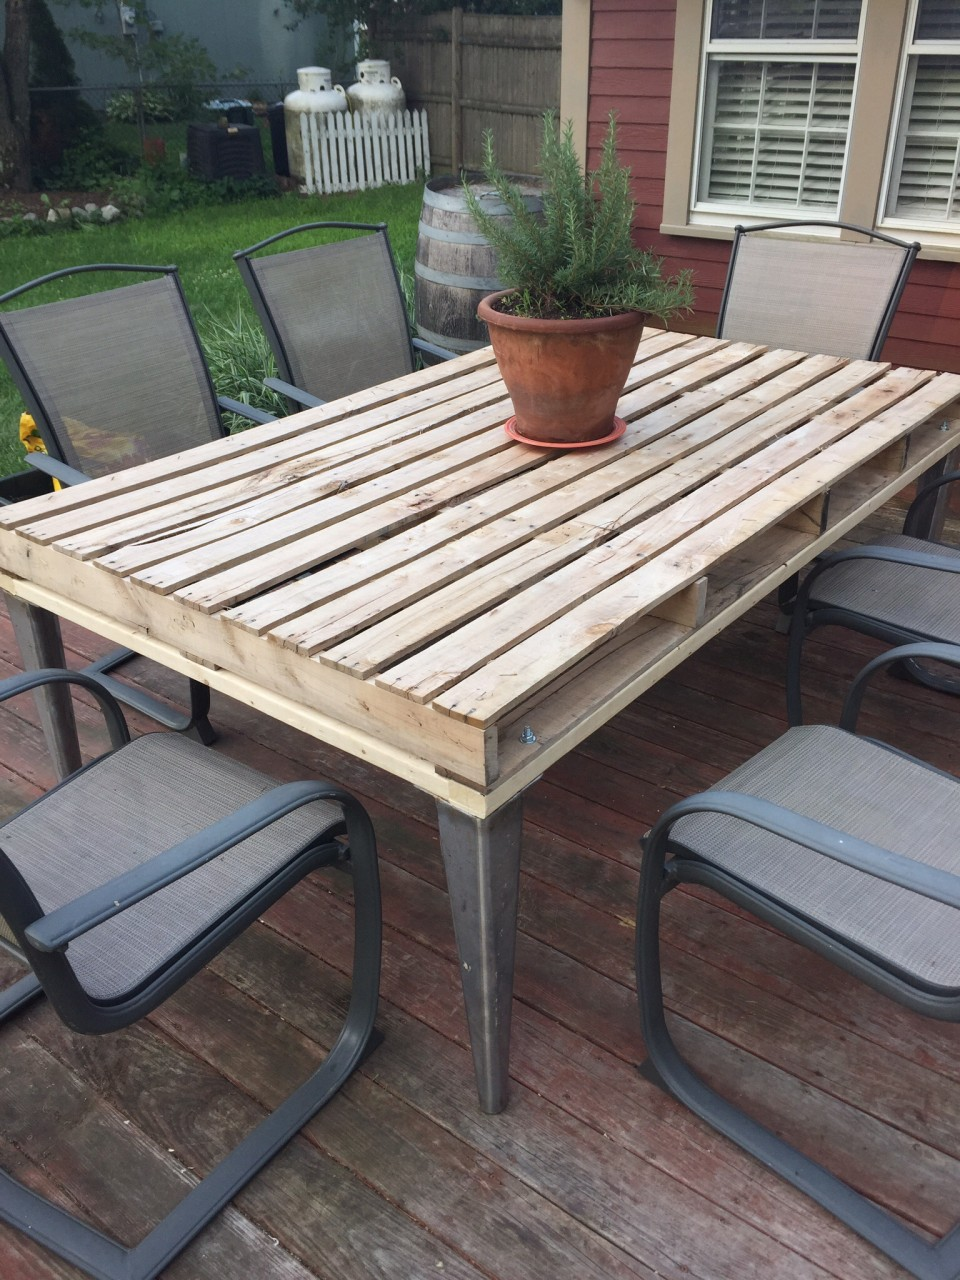 Patio coffee table out of wooden pallets pallet ideas recycled upcycled pallets furniture Patio coffee tables